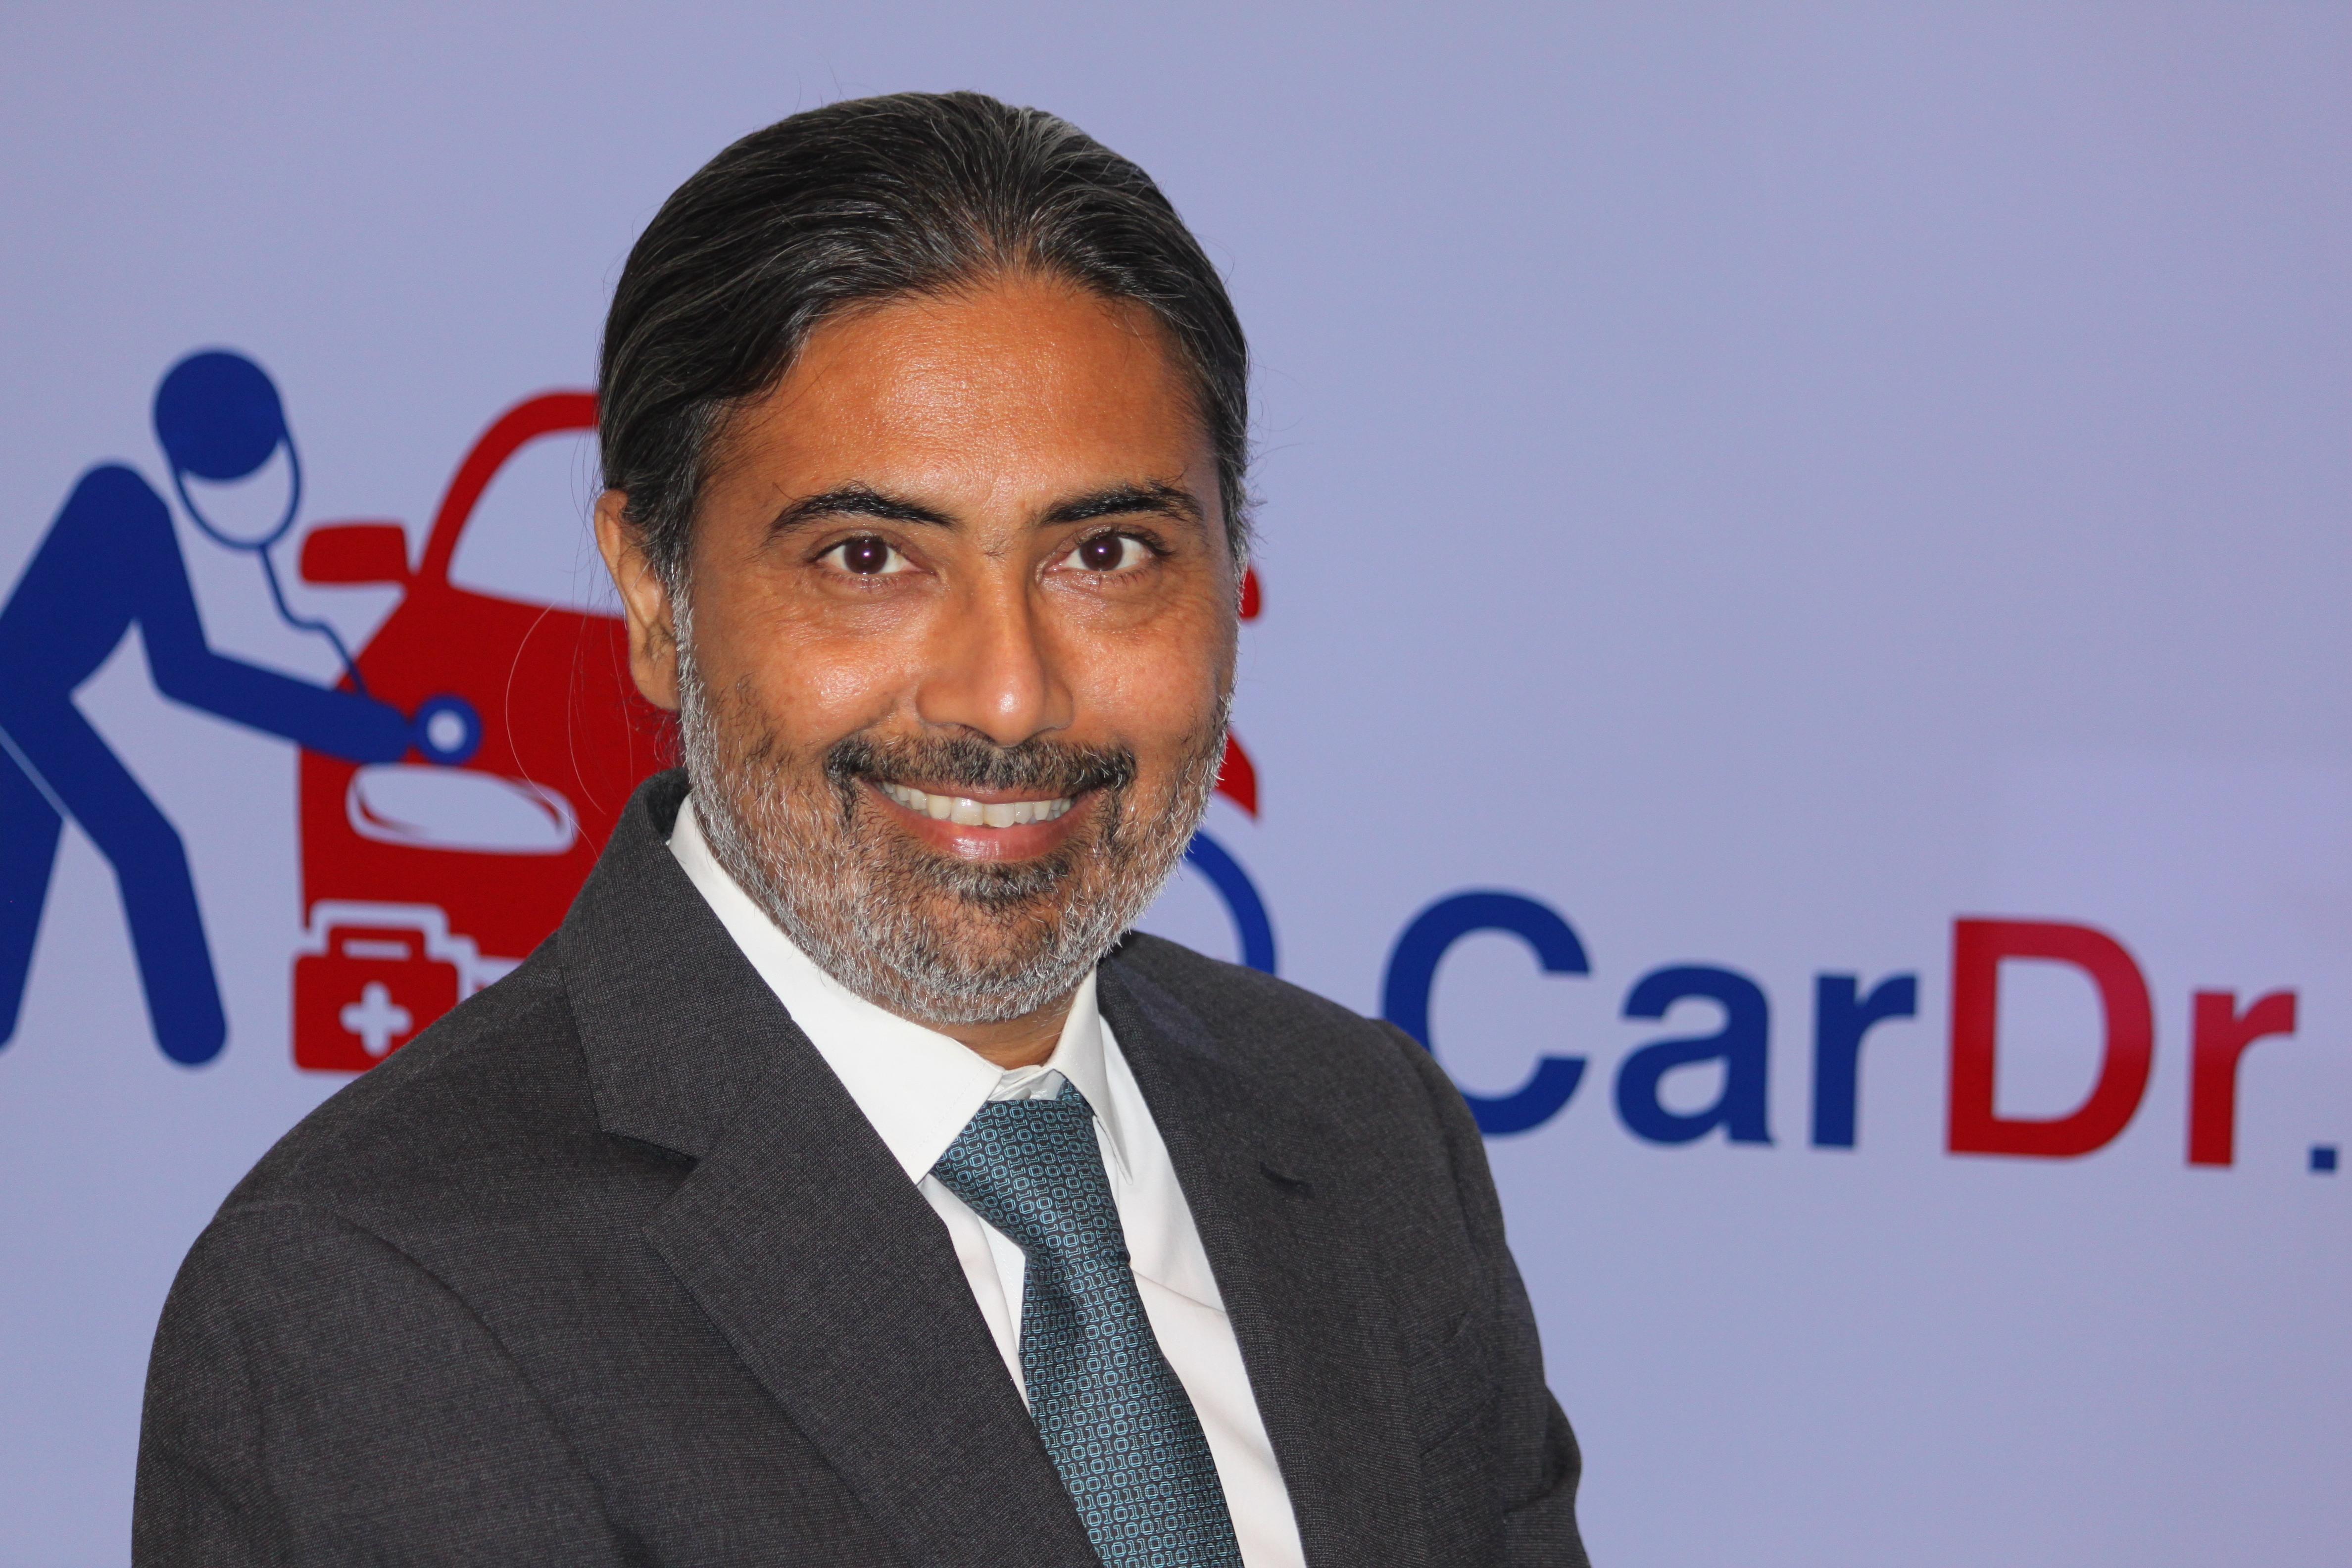 Parry Singh CarDr.com Founder and Chairman